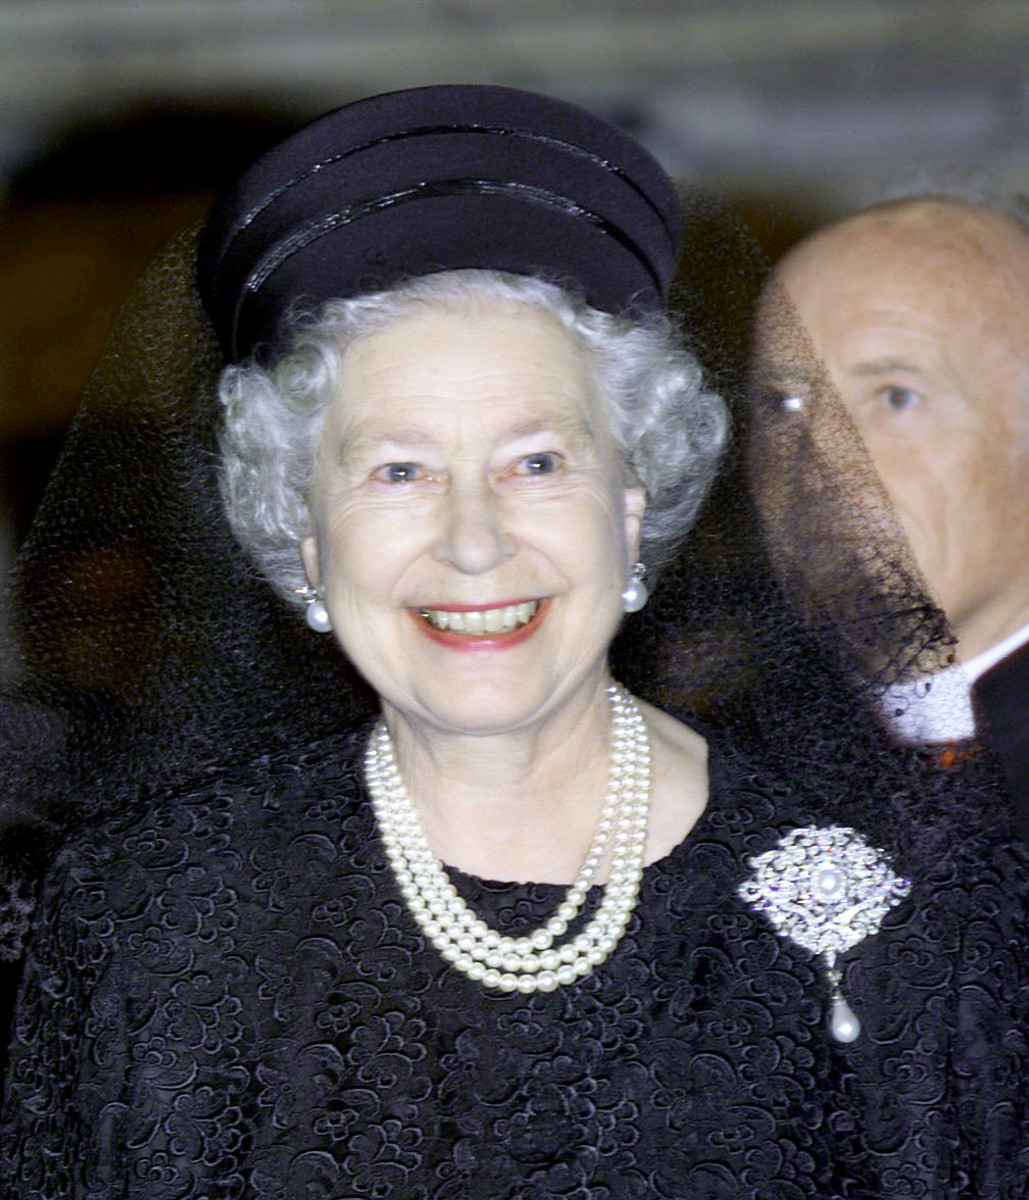 Queen Elizabeth wears the Richmond brooch while visiting the Sistine Chapel in the Vatican City, Rome , Italy, in 2000. For Prince Phillip's funeral, she wore it without the drop pearl.